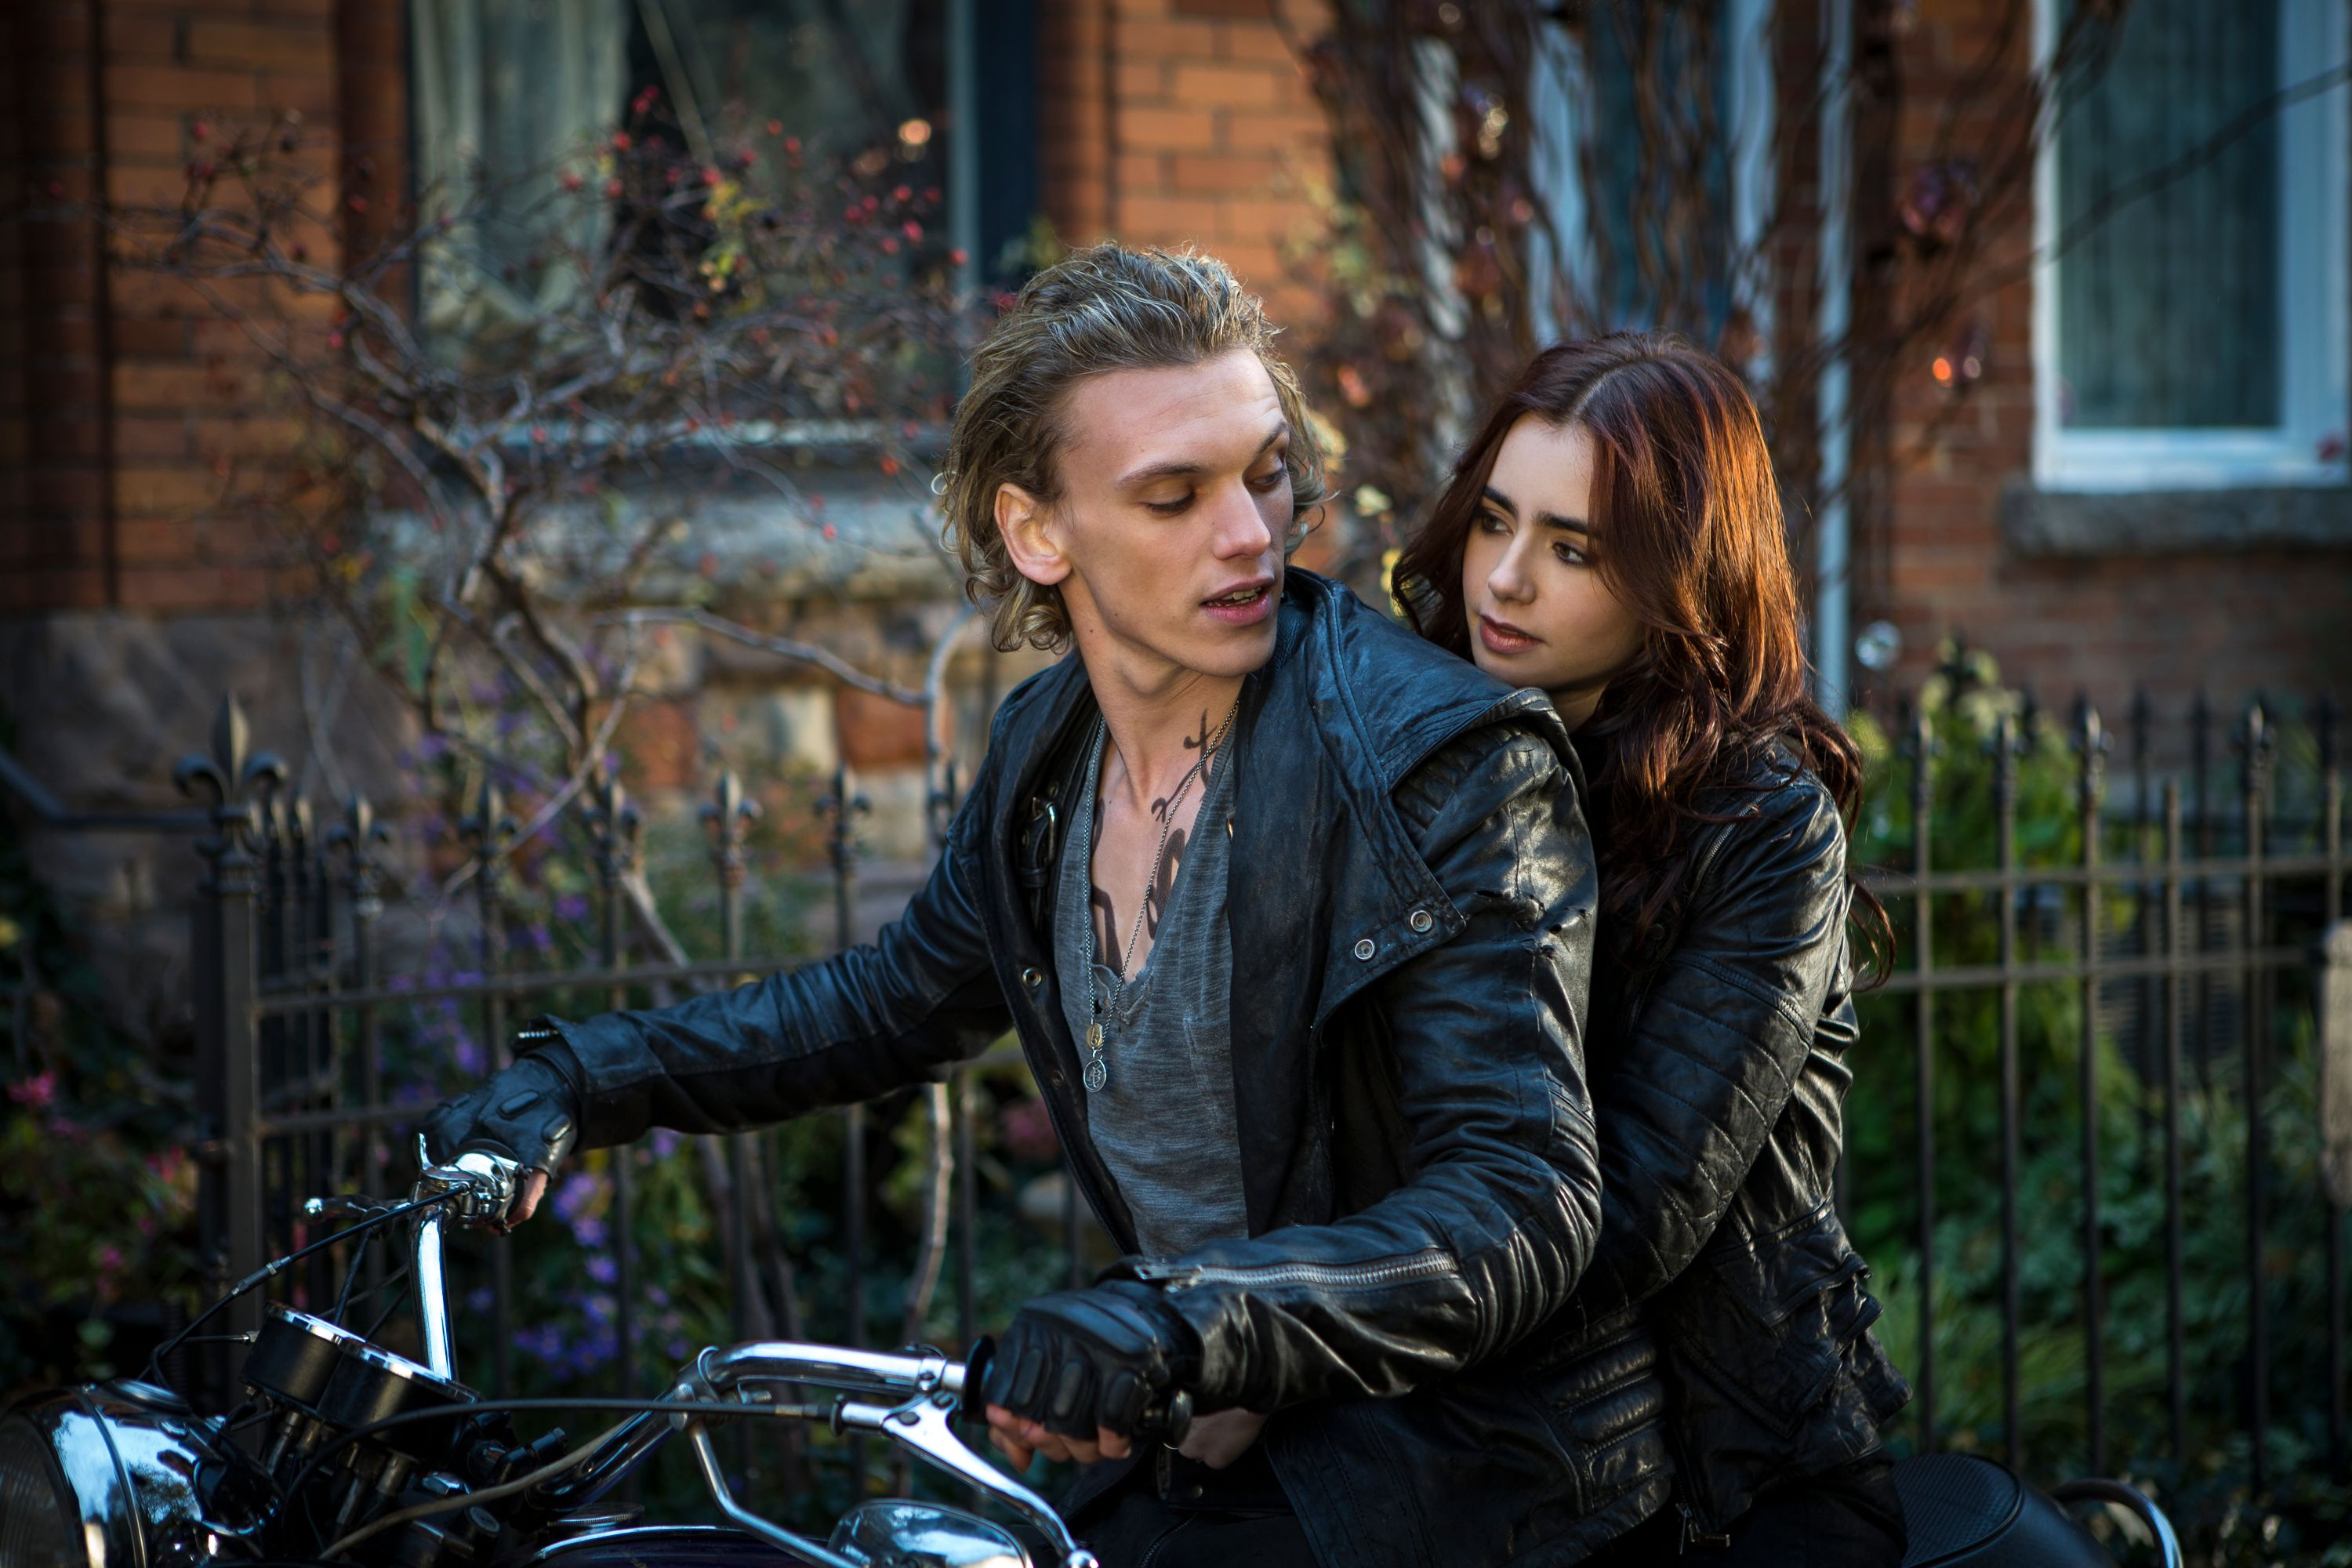 Shadowhunters: McG to Direct First Episode of Mortal ...